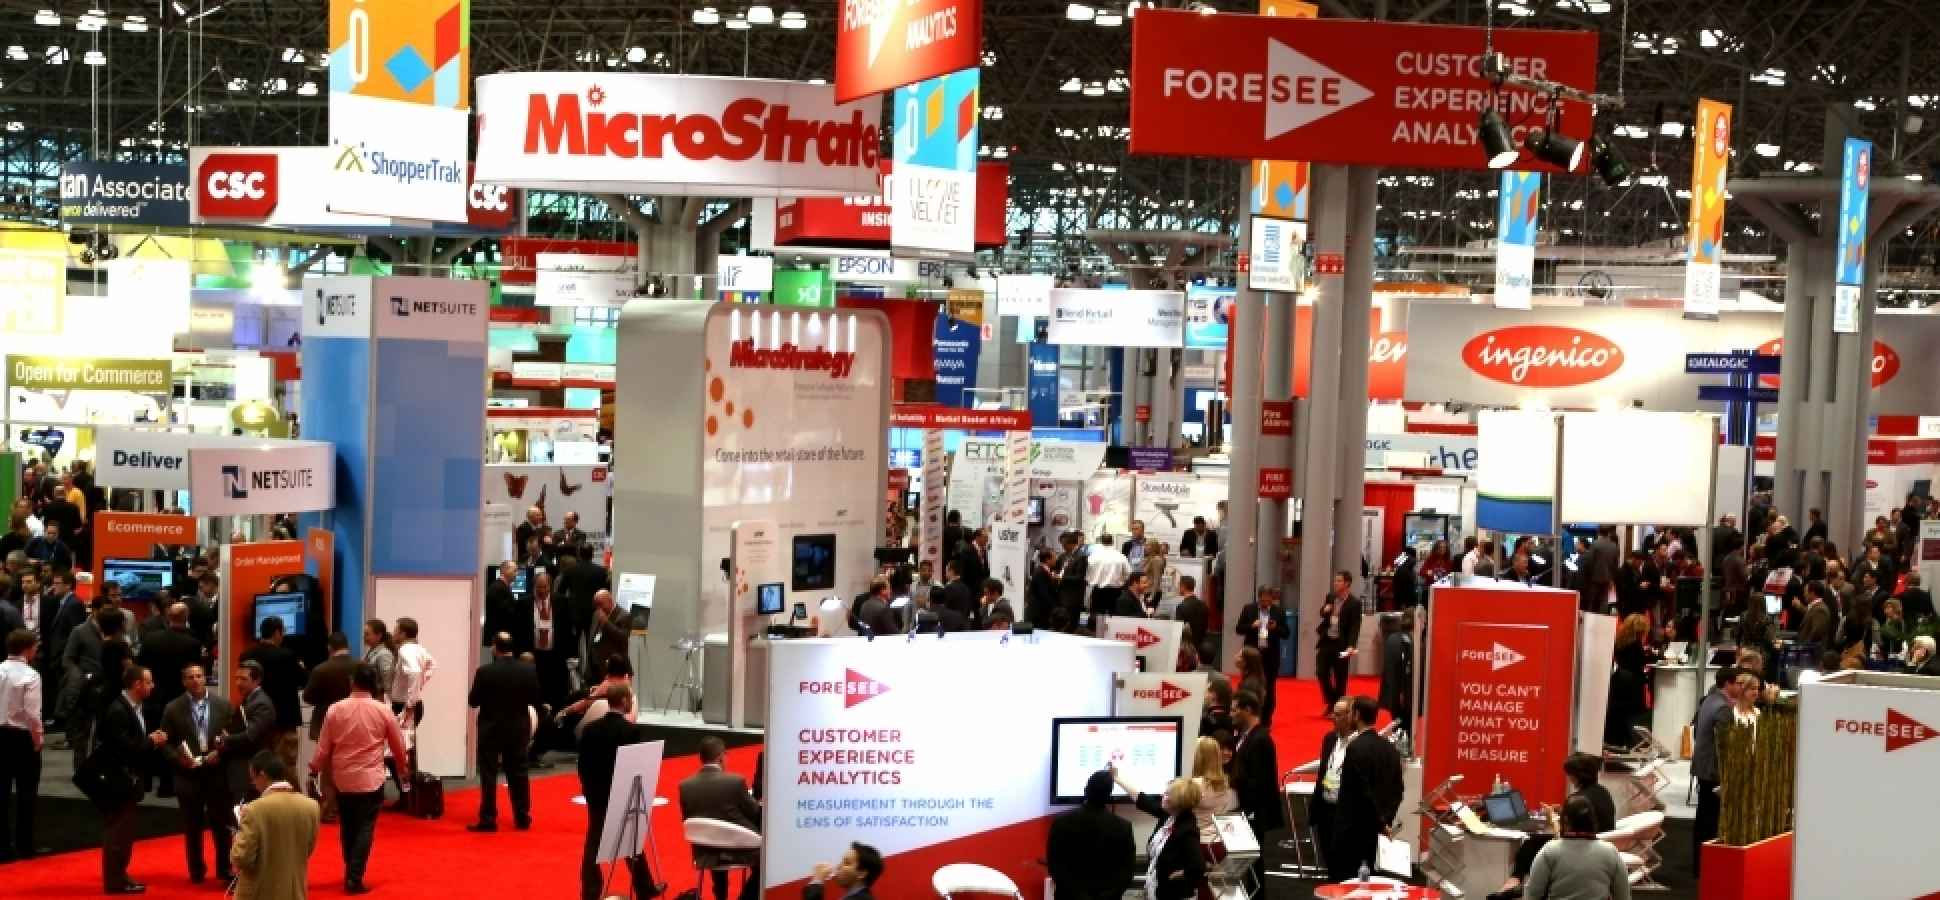 From CES to NRF: In 2015 Technology Will Create Even More Seismic Change for Business